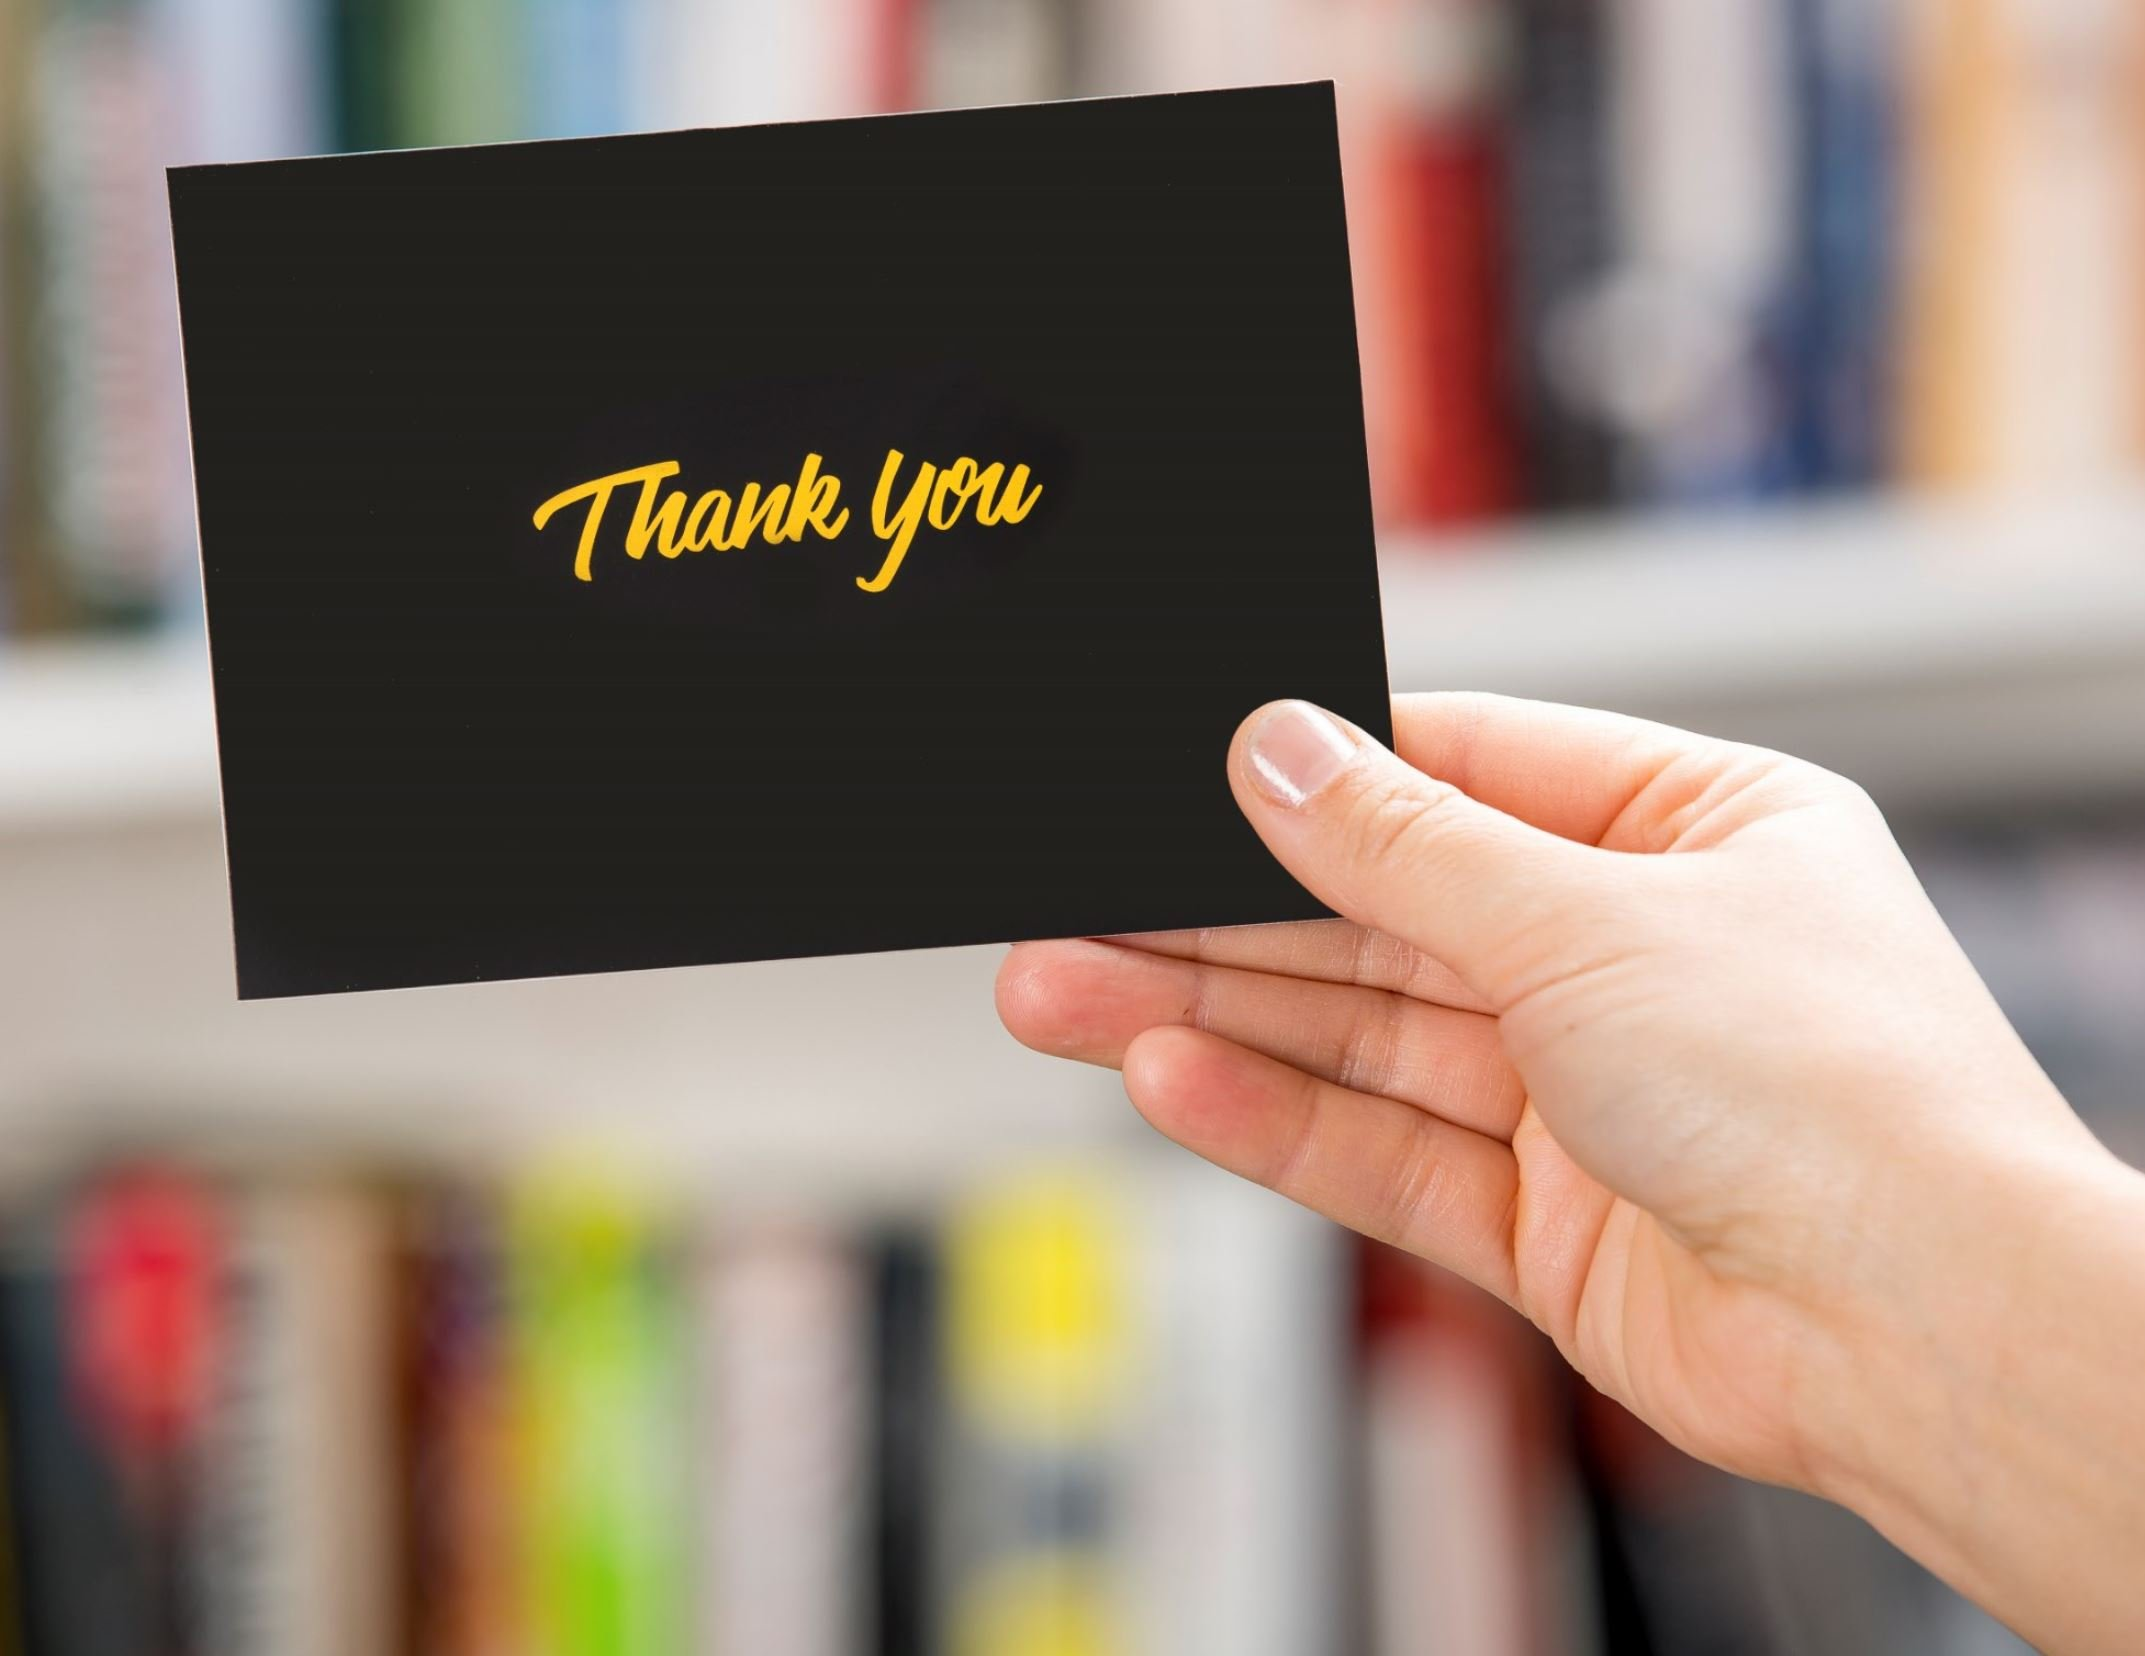 100 Thank You Cards with Envelopes - Thank You Notes, Black & Gold Foil - Blank Cards with Envelopes - For Business, Wedding, Graduation, Baby/Bridal Shower, Funeral, Professional Thank You Cards Bulk by FORTIVO (Image #5)